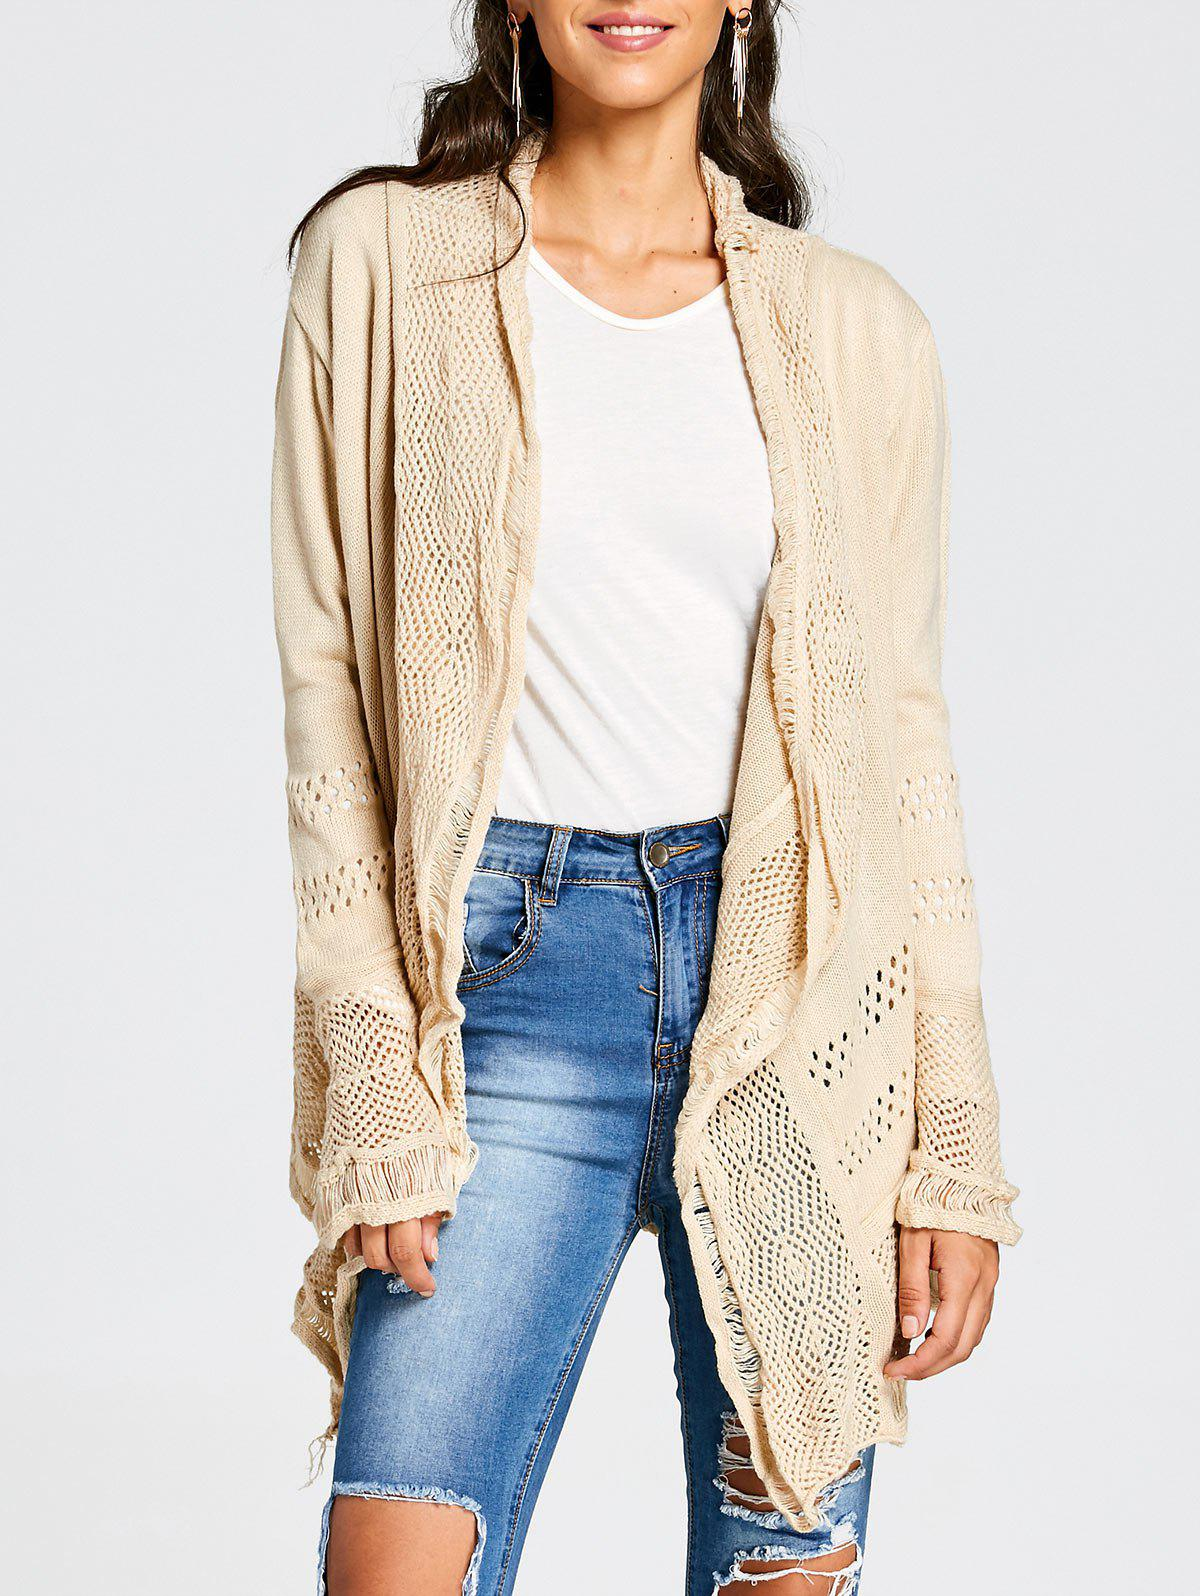 Online Simple Style Collarless Hollow Out Solid Color Irregular Cardigan For Women